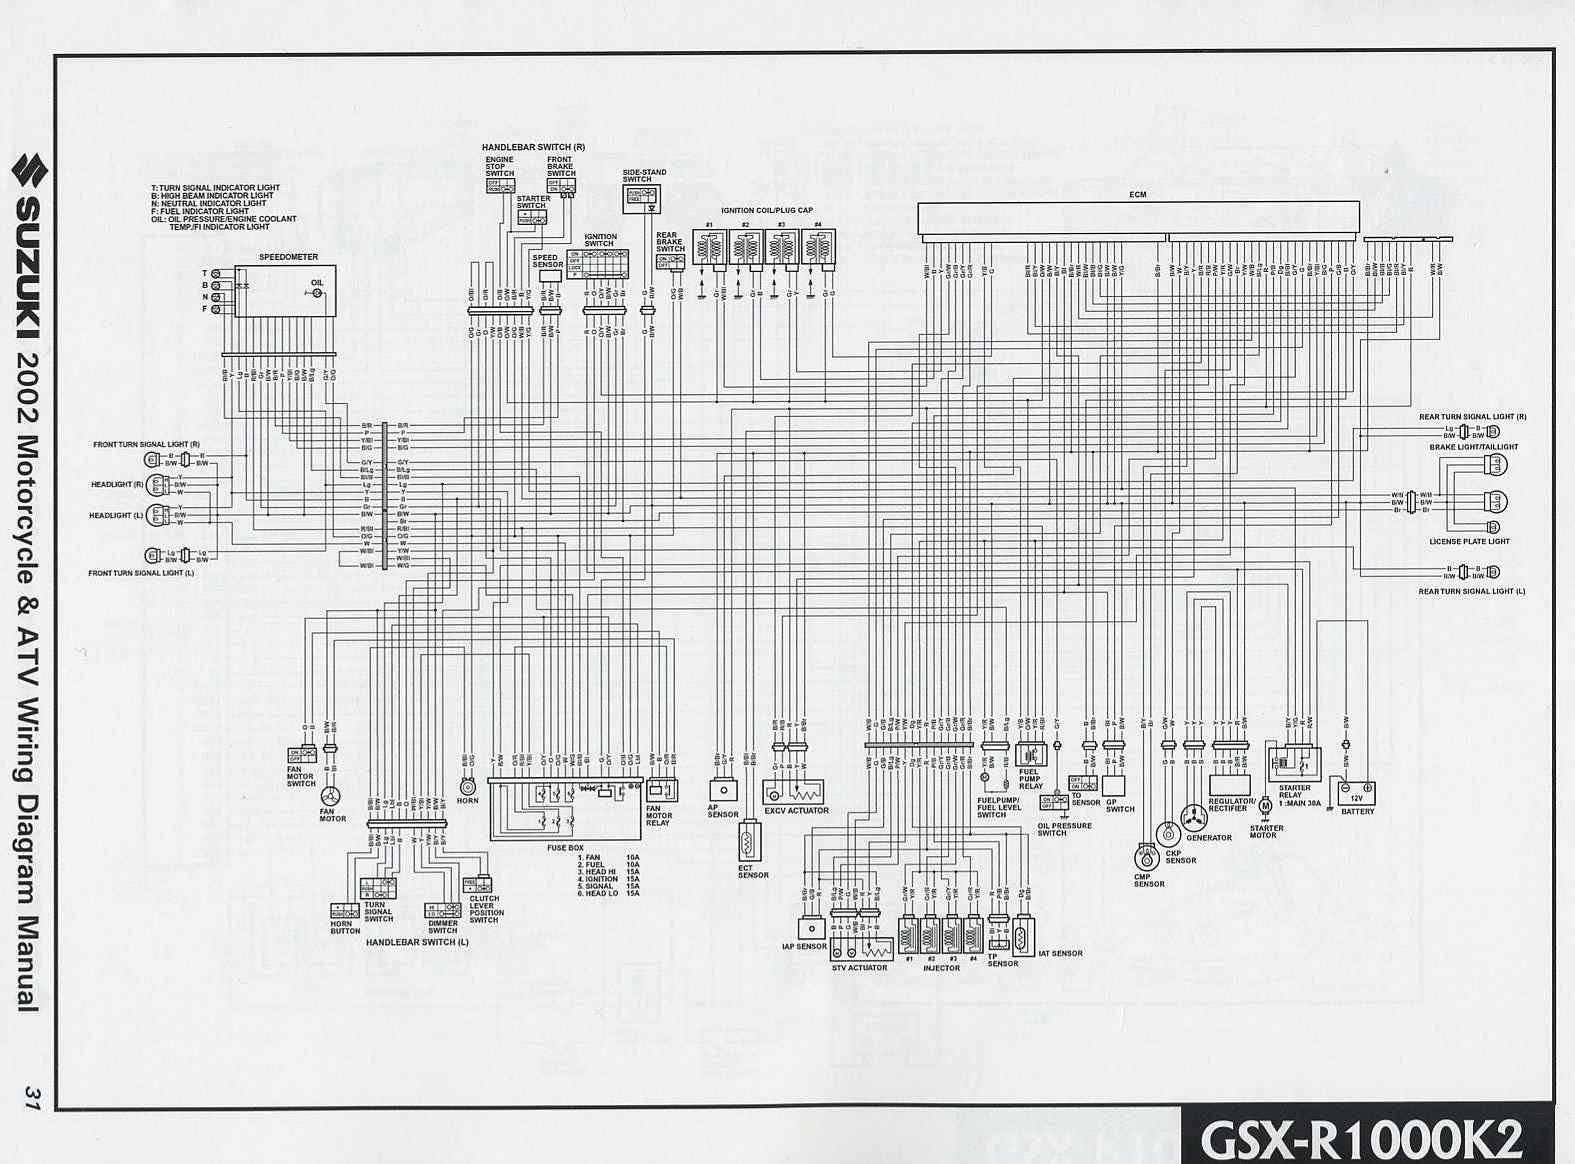 gsxr 1000 wiring diagram 2006 wiring diagrams online 2006 gsxr 1000 wiring diagram 2006 wiring diagrams online